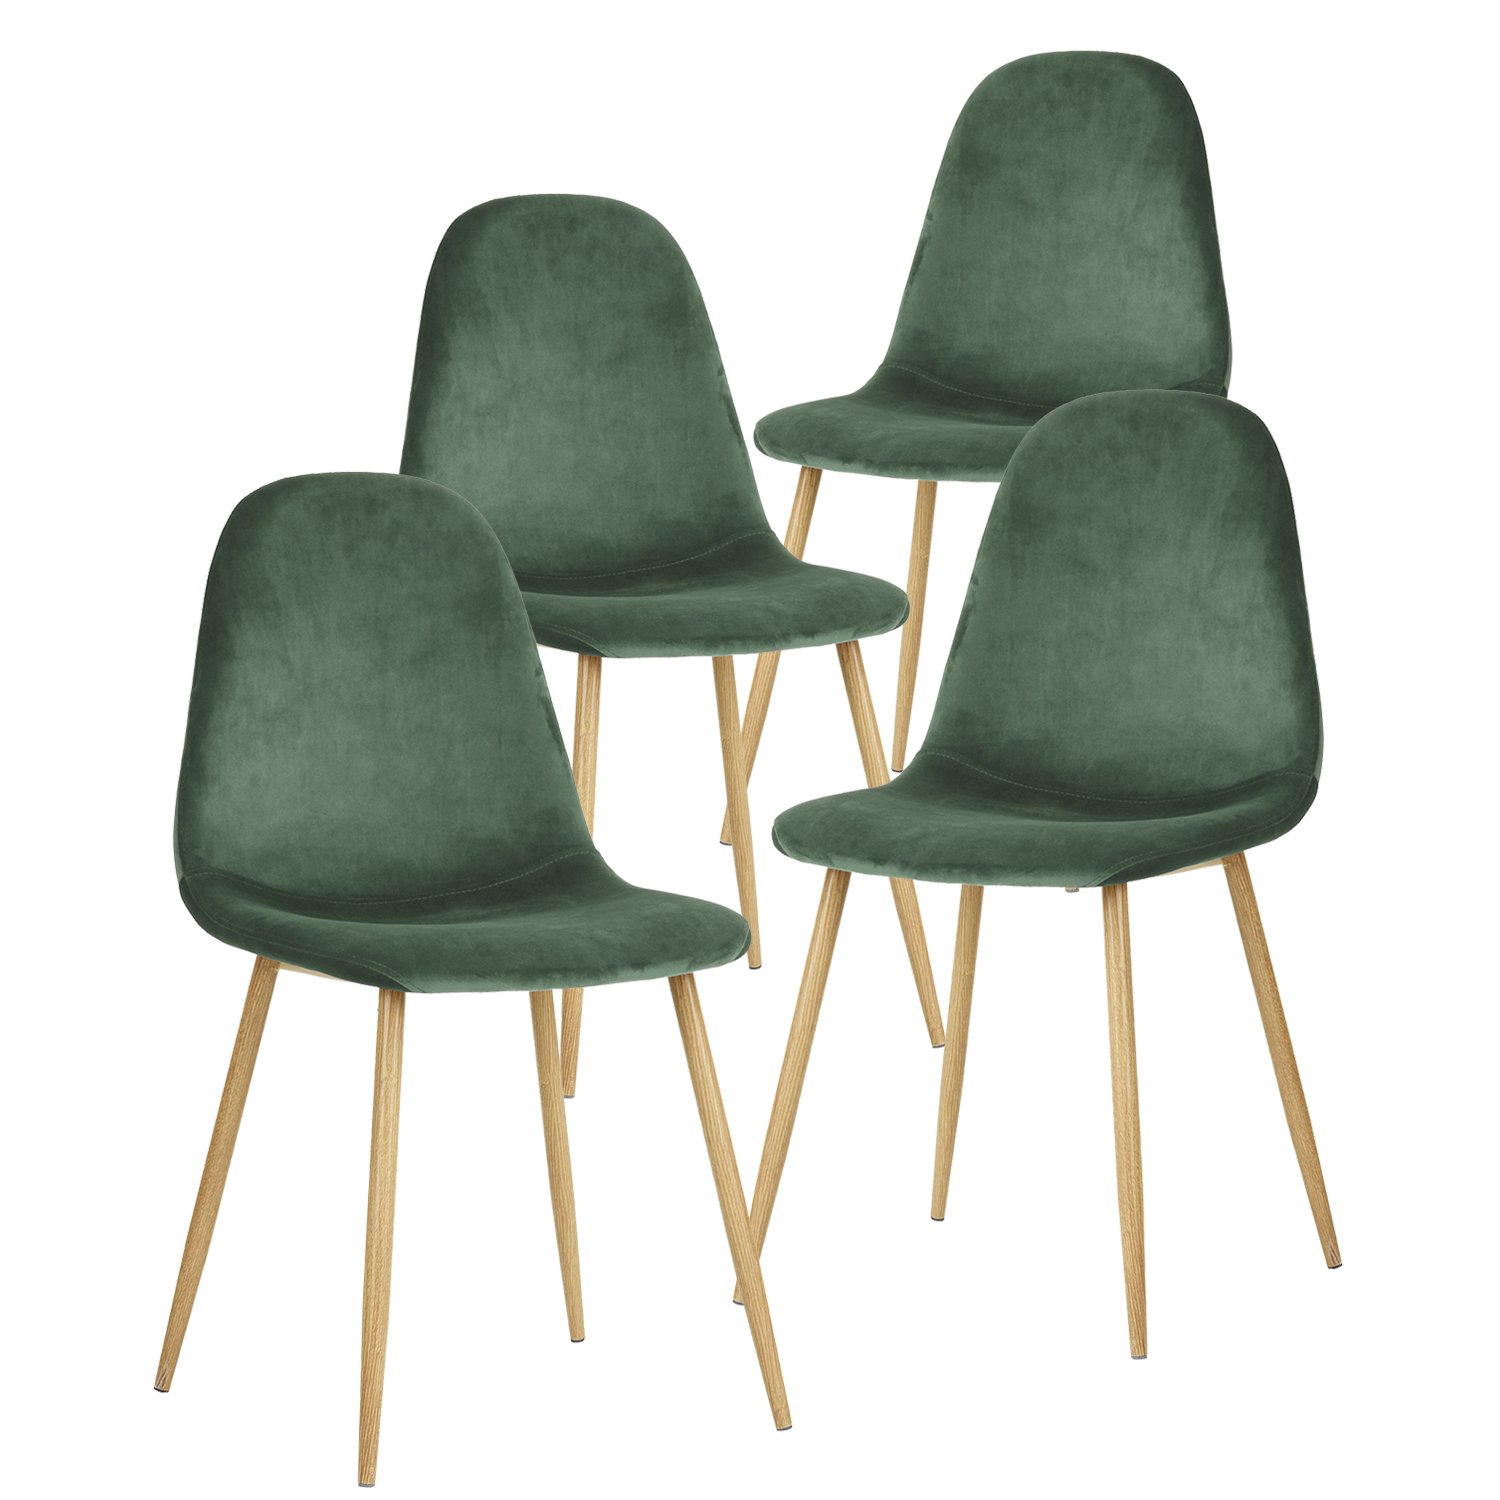 GreenForest Dining Chairs for Kitchen, Mid Century Modern Side Chairs,Velvet Upholstered Dining Chair with Metal Legs Set of 4,Cactus by GreenForest